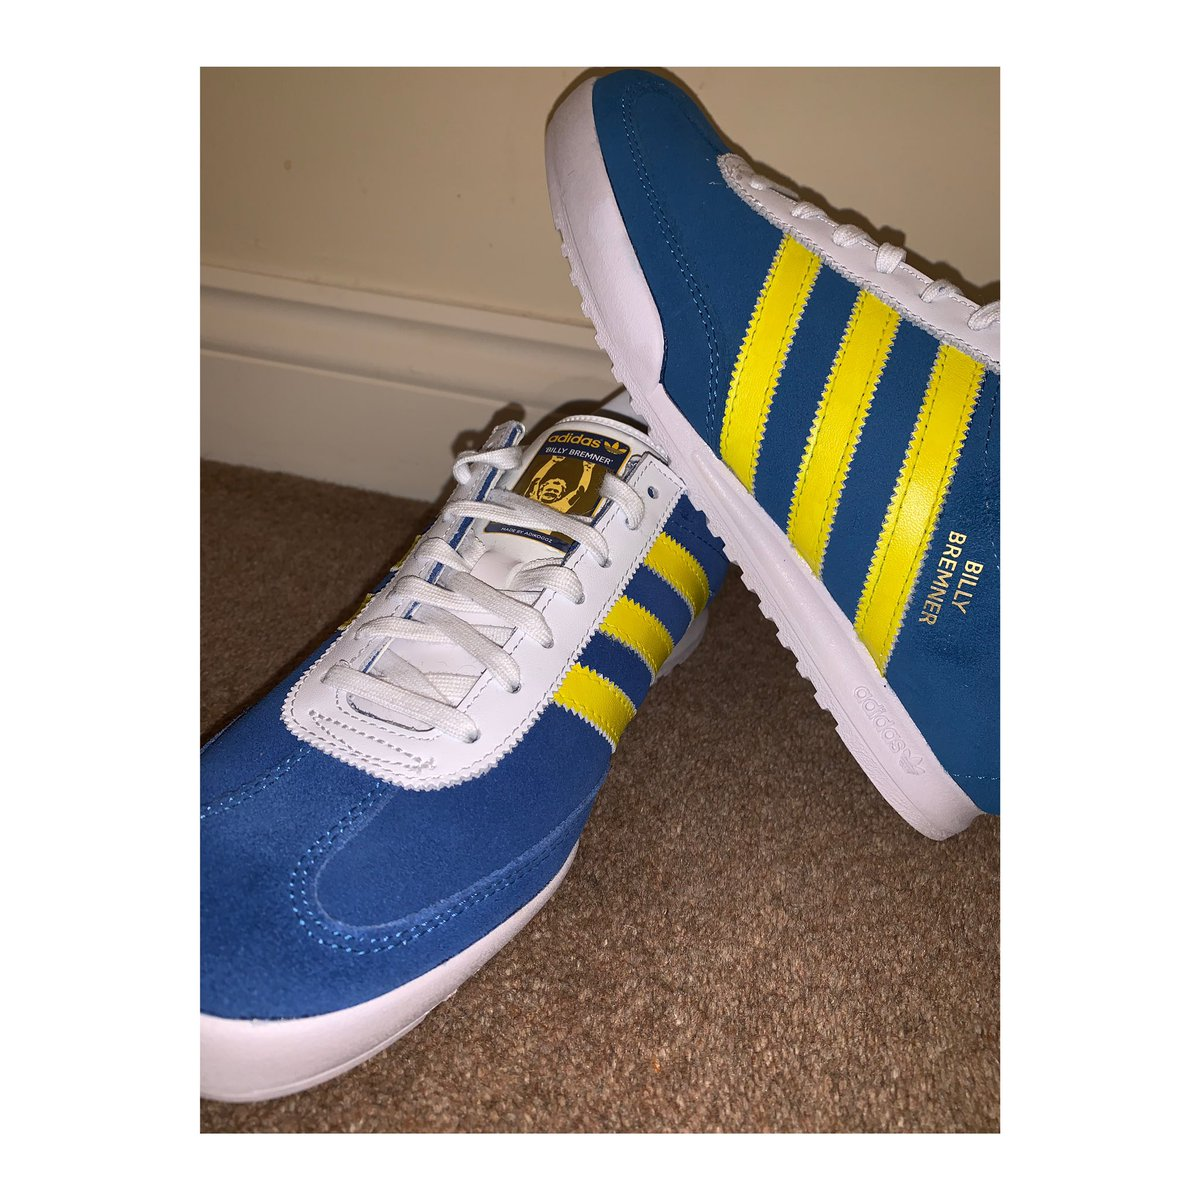 """Adidas custom """"Billy Bremner"""" edition 🤯 Text removed, custom Billy Bremner text applied to the side, custom tongue tabs created for the tongues all customised and created by adikoggz. All share to all your Leeds fans and pages would be appreciated #leeds #leedsunited #BillyB"""